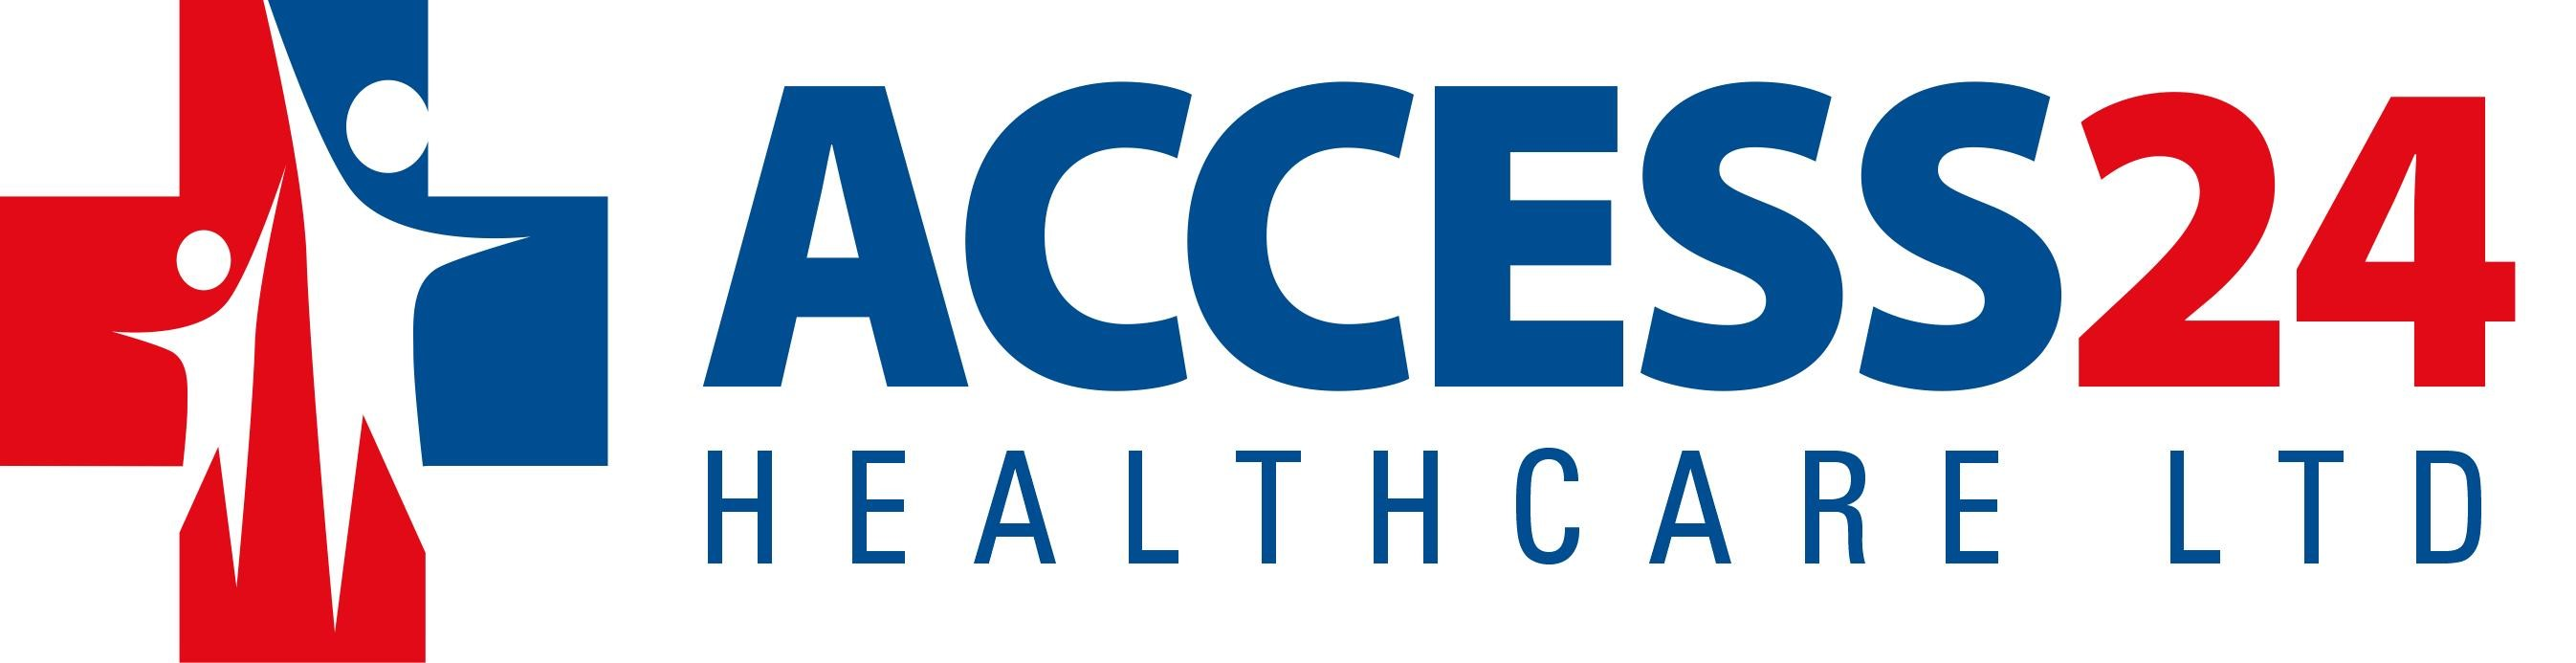 Access24 Healthcare